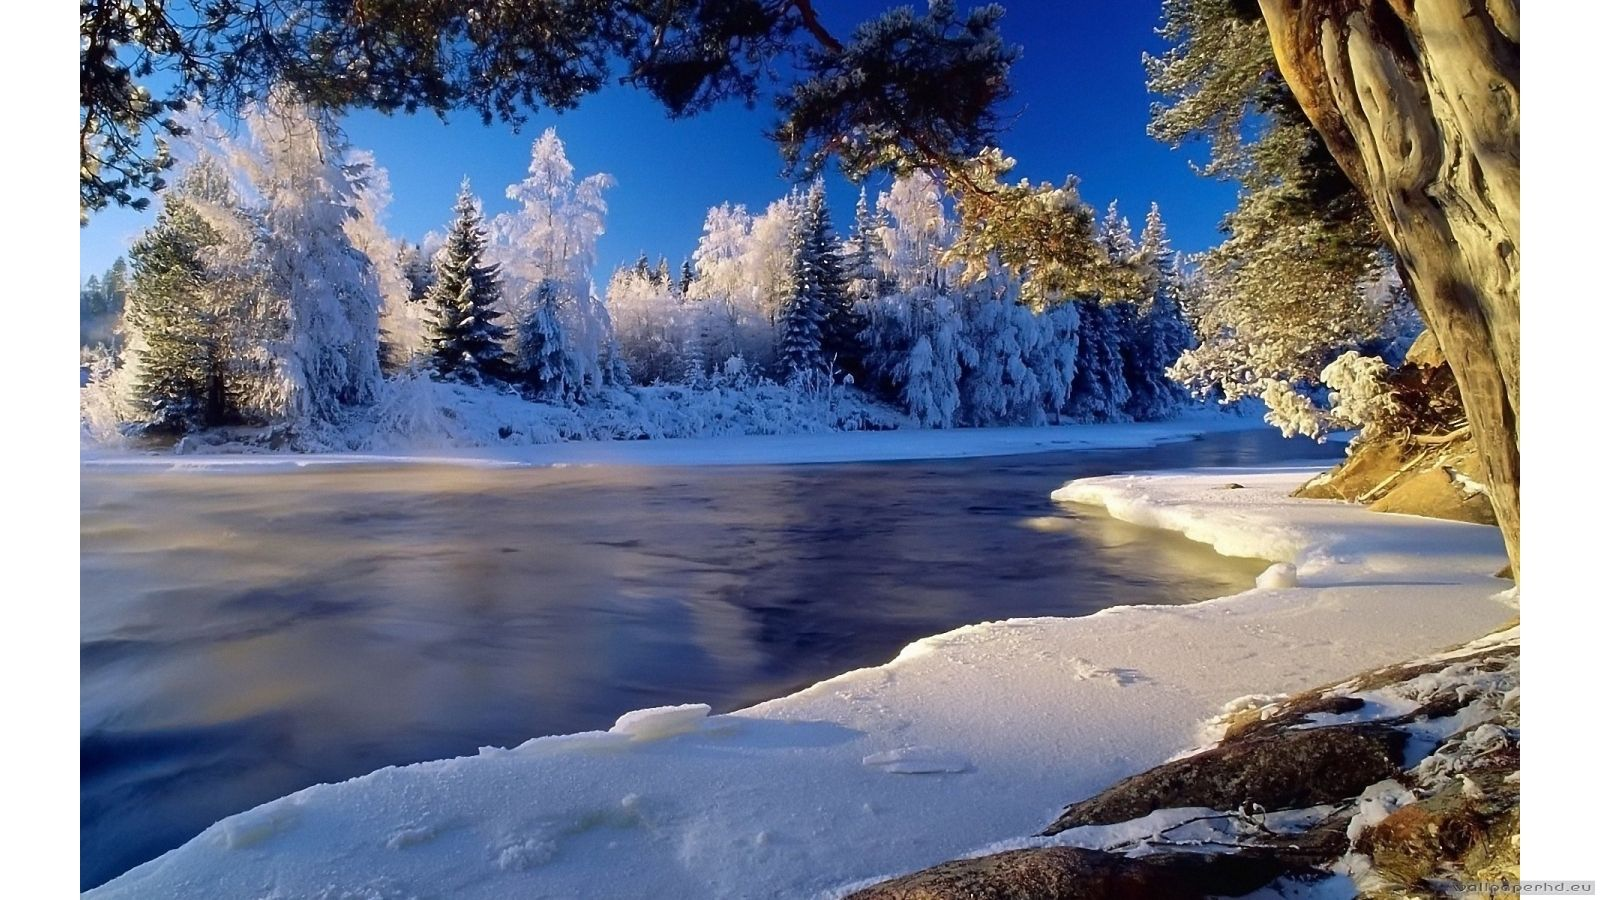 Snowy Landscape Wallpapers Posted By Samantha Walker